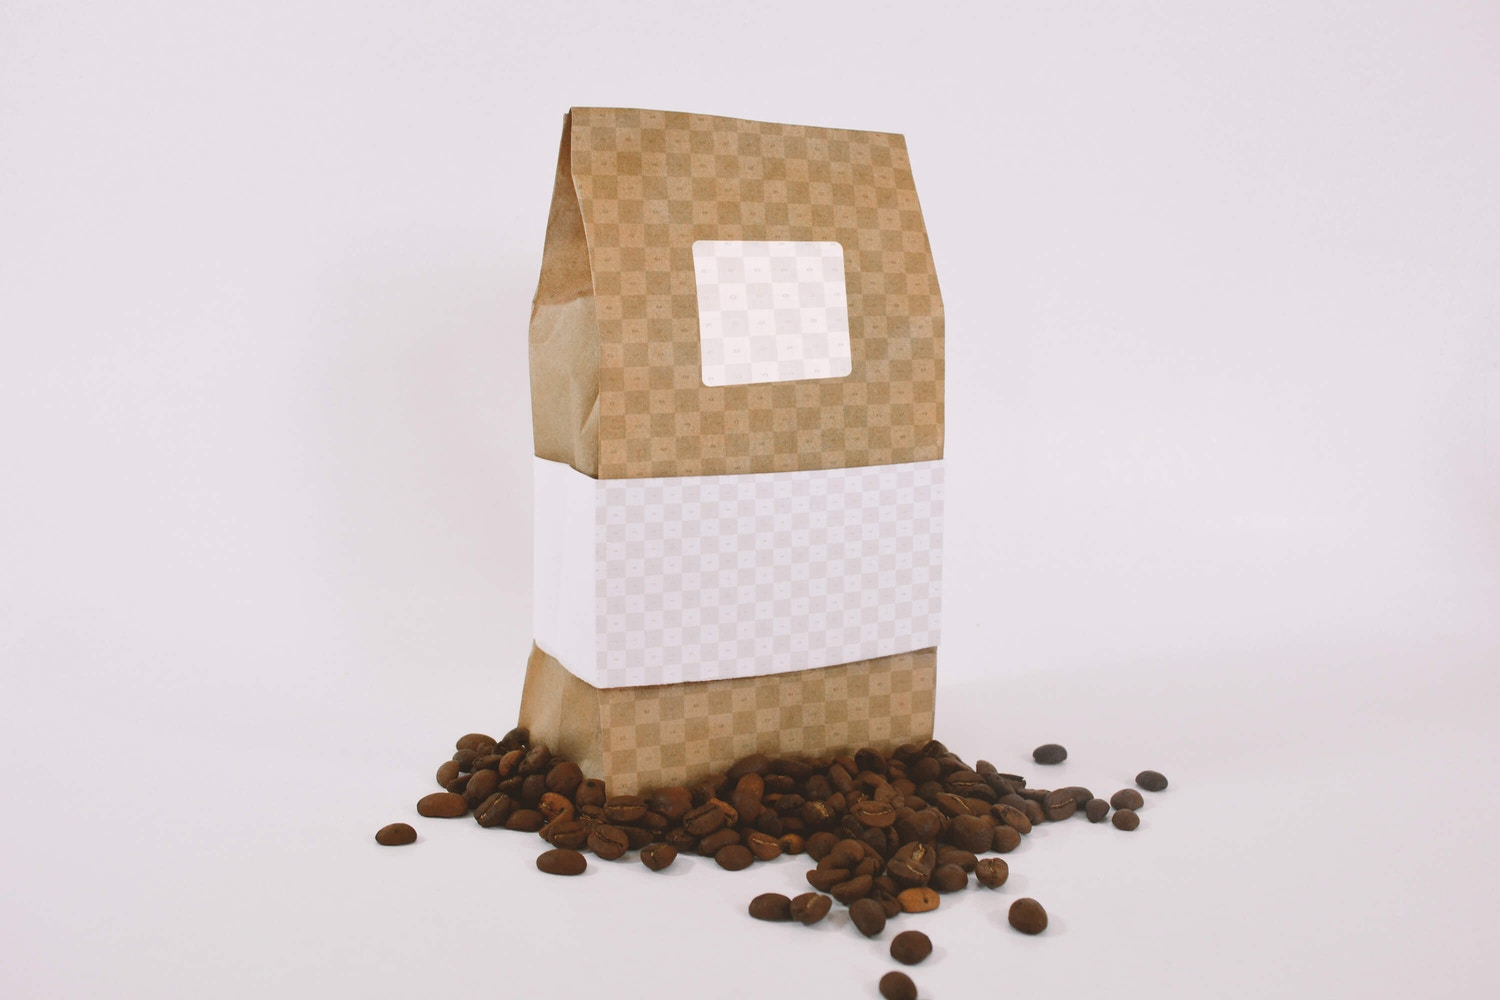 Coffee Bag Mockup Perspective View (2) by Eduardo Mejia on Original Mockups